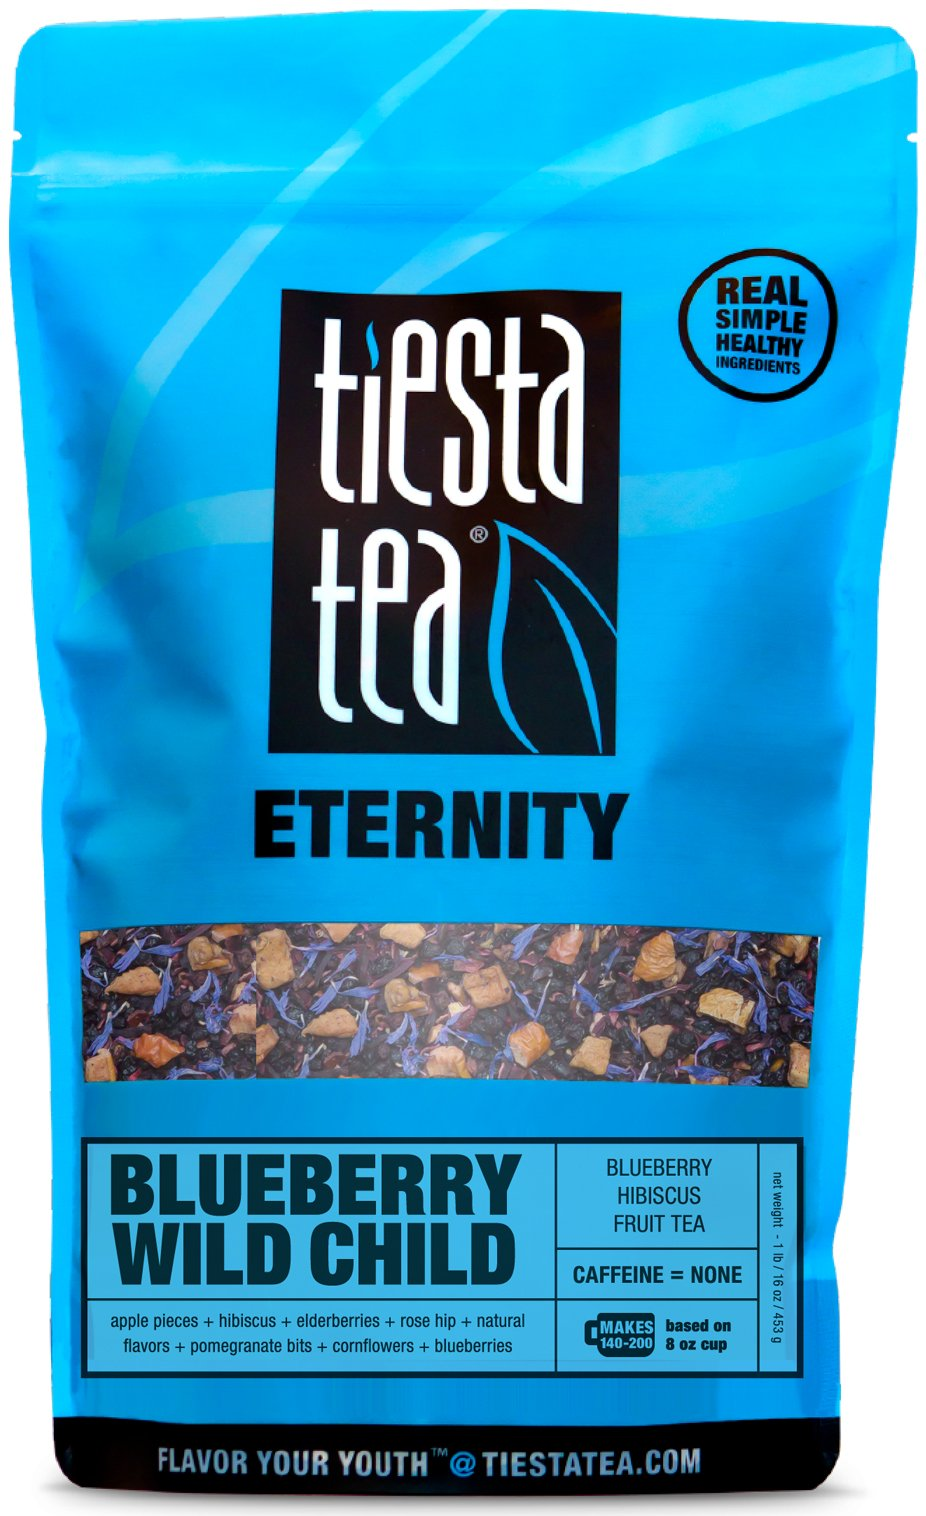 Blueberry Hibiscus Fruit Tea | BLUEBERRY WILD CHILD 1 Lb Bag by TIESTA TEA | Caffeine Free | Loose Leaf Herbal Tea Eternity Blend | Non-GMO